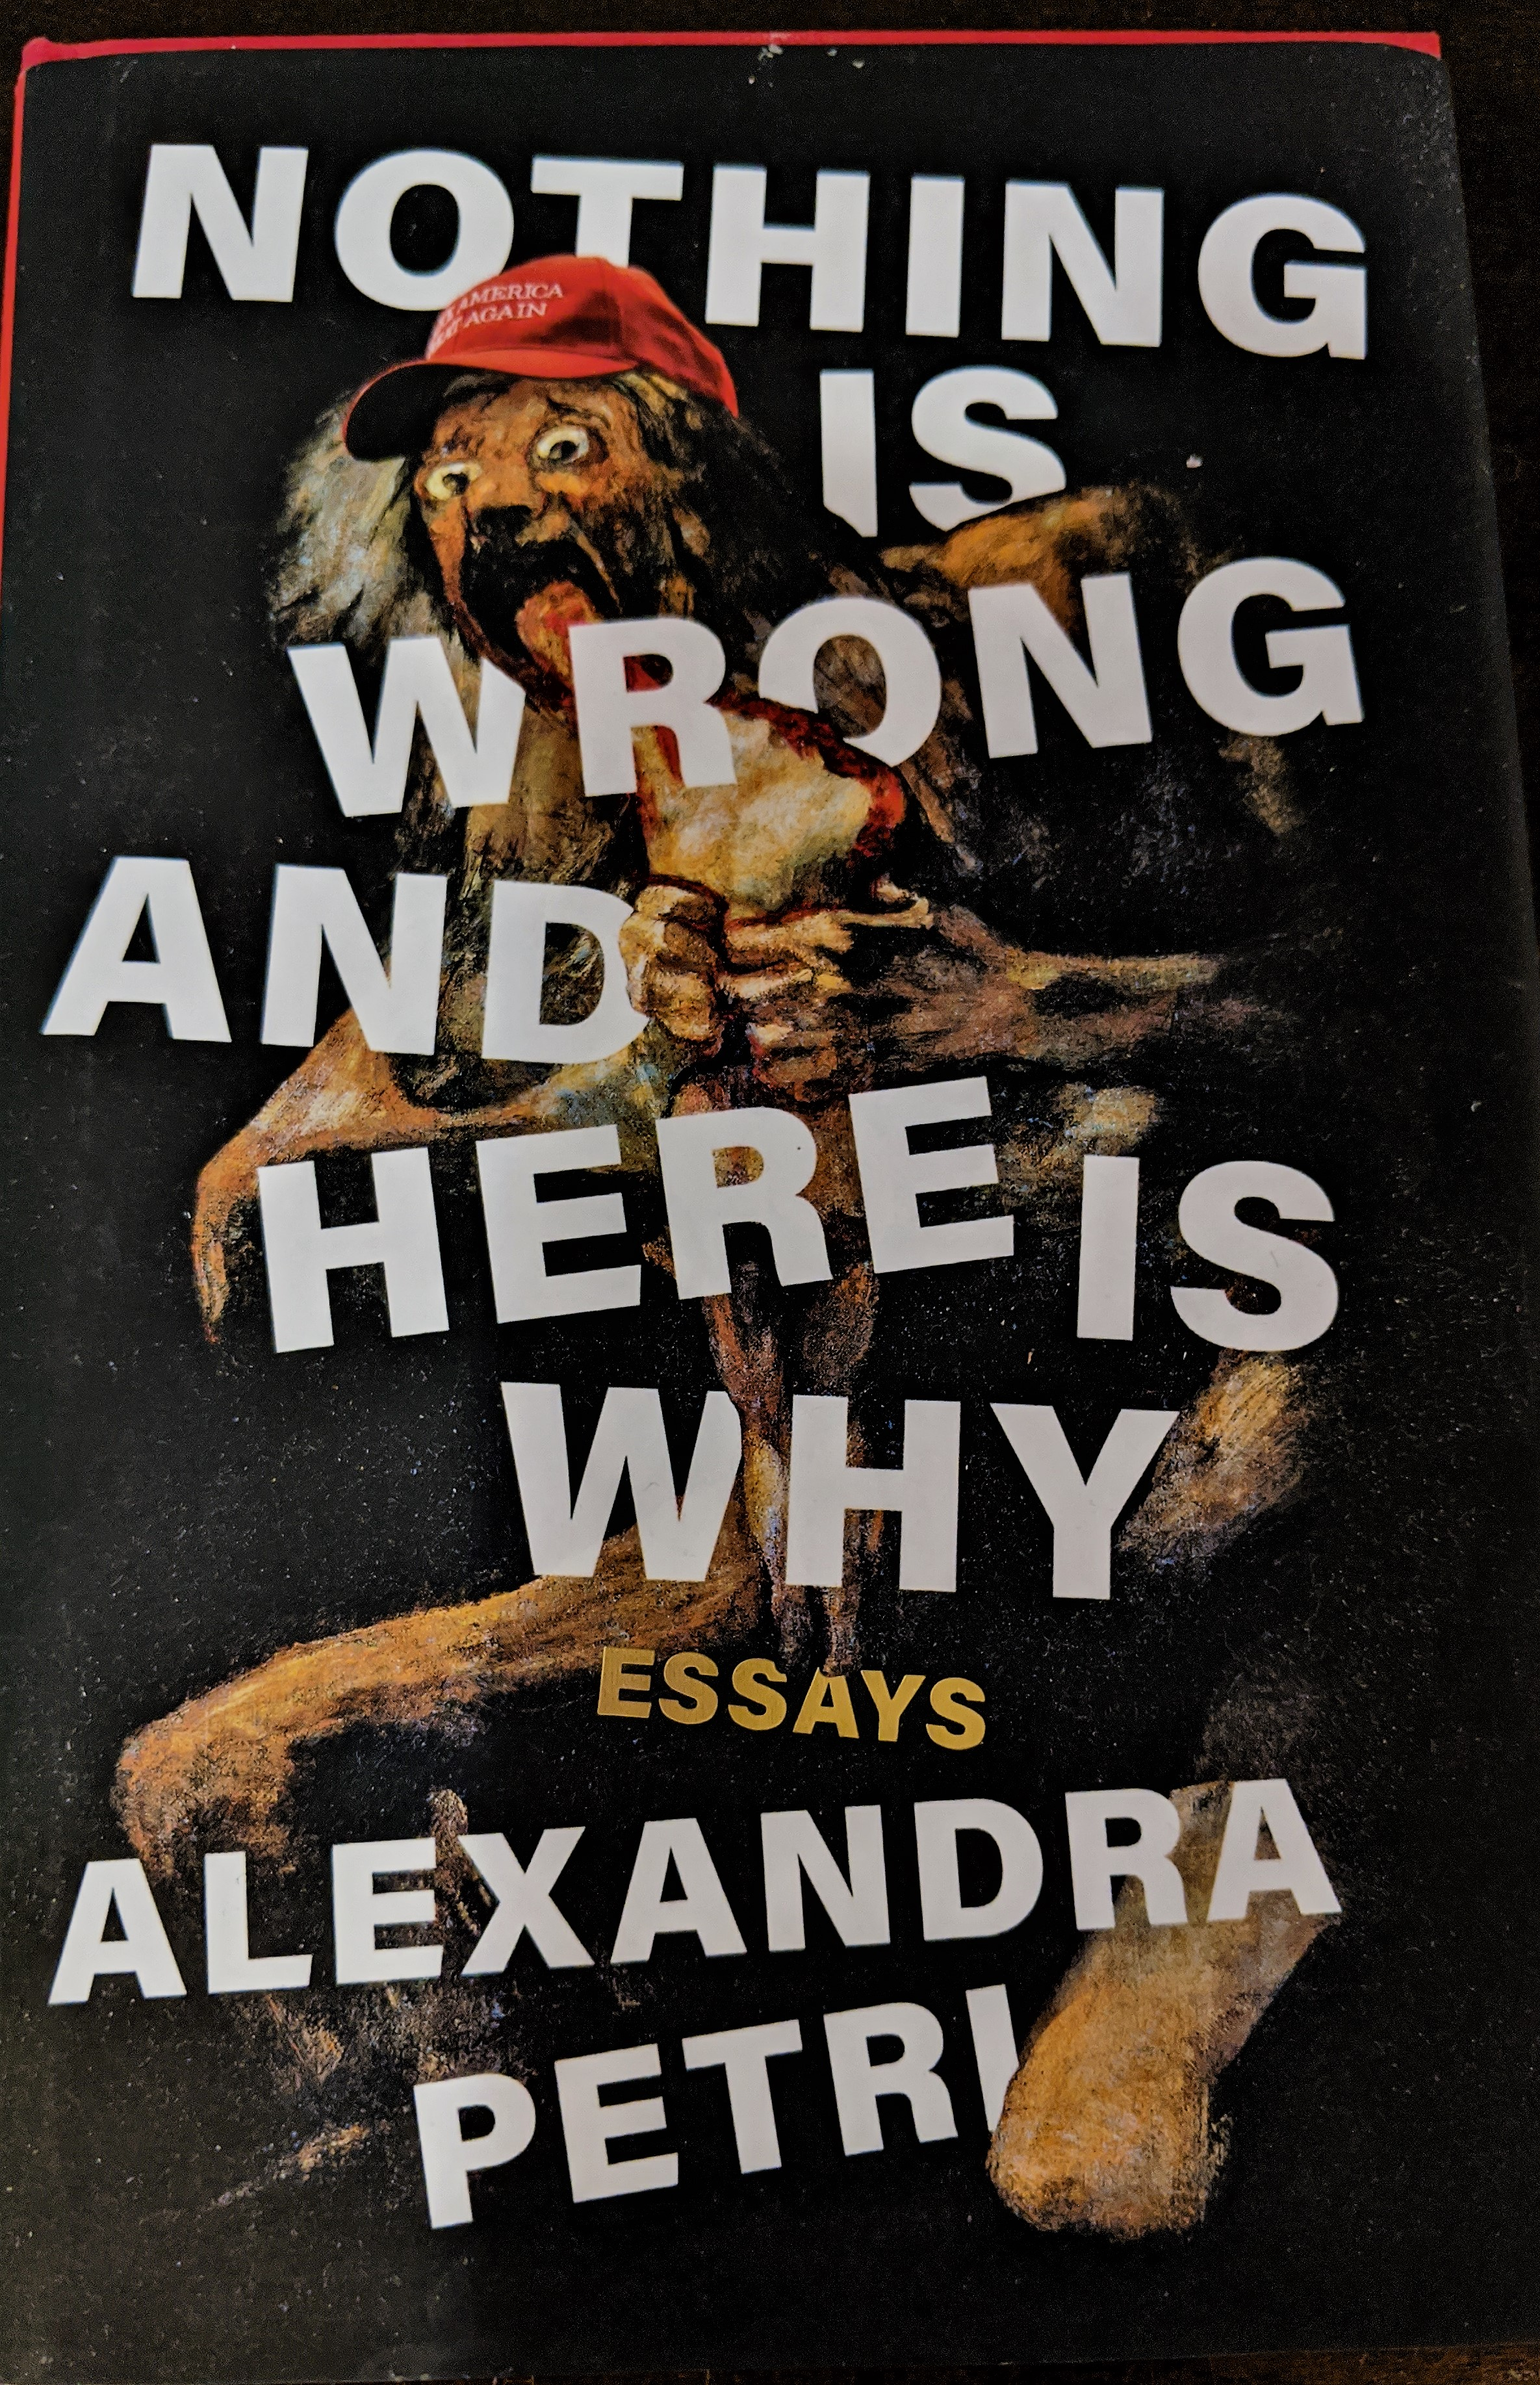 Alexandra Petri: Nothing is Wrong and Here is Why